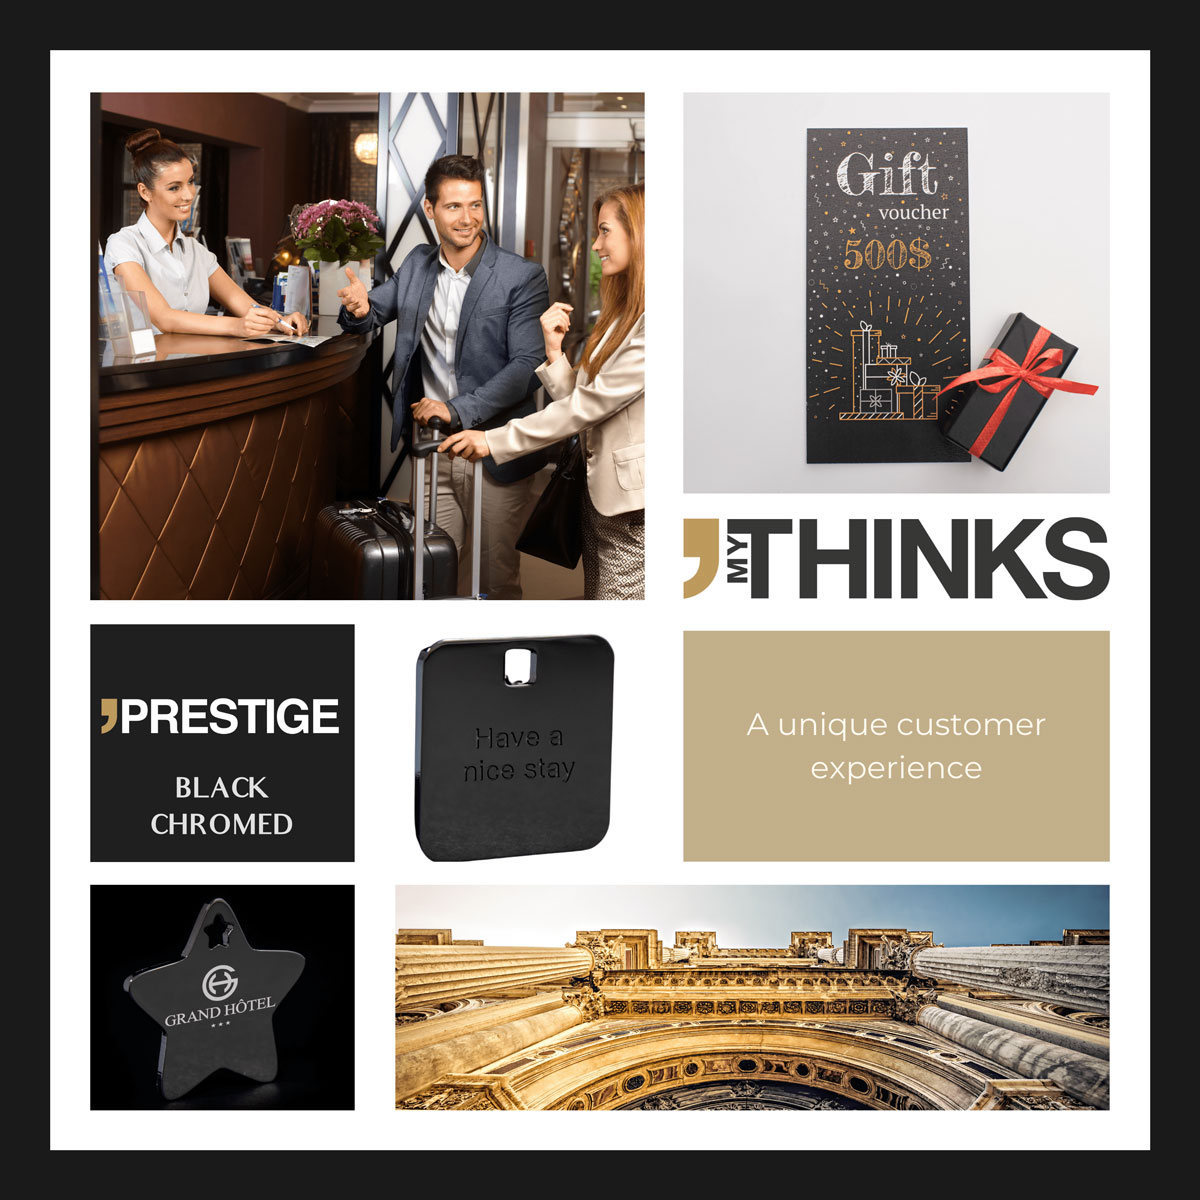 Mood board Prestige collection gifts chromed black medal personalized for the culture and hospitality market